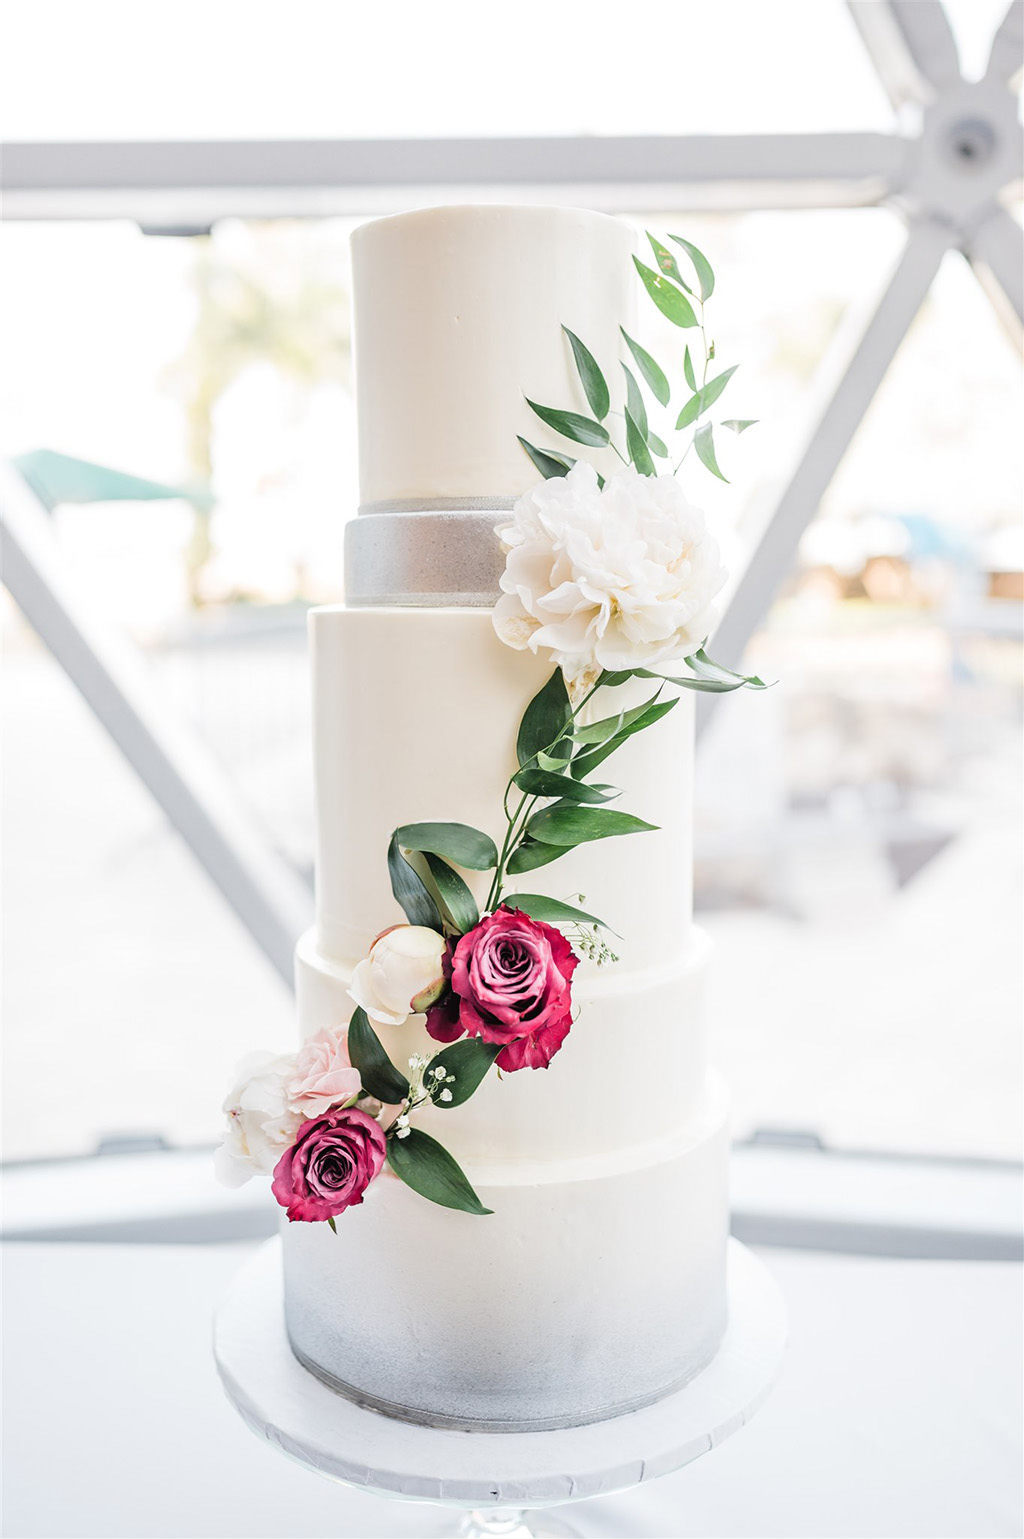 Modern White with Silver Accent Four Tier Wedding Cake with Cascading Magenta Pink and White with Greenery Flowers | St. Pete Wedding Cake Bakery The Artistic Whisk | Tampa Wedding Planner and Florist John Campbell Weddings